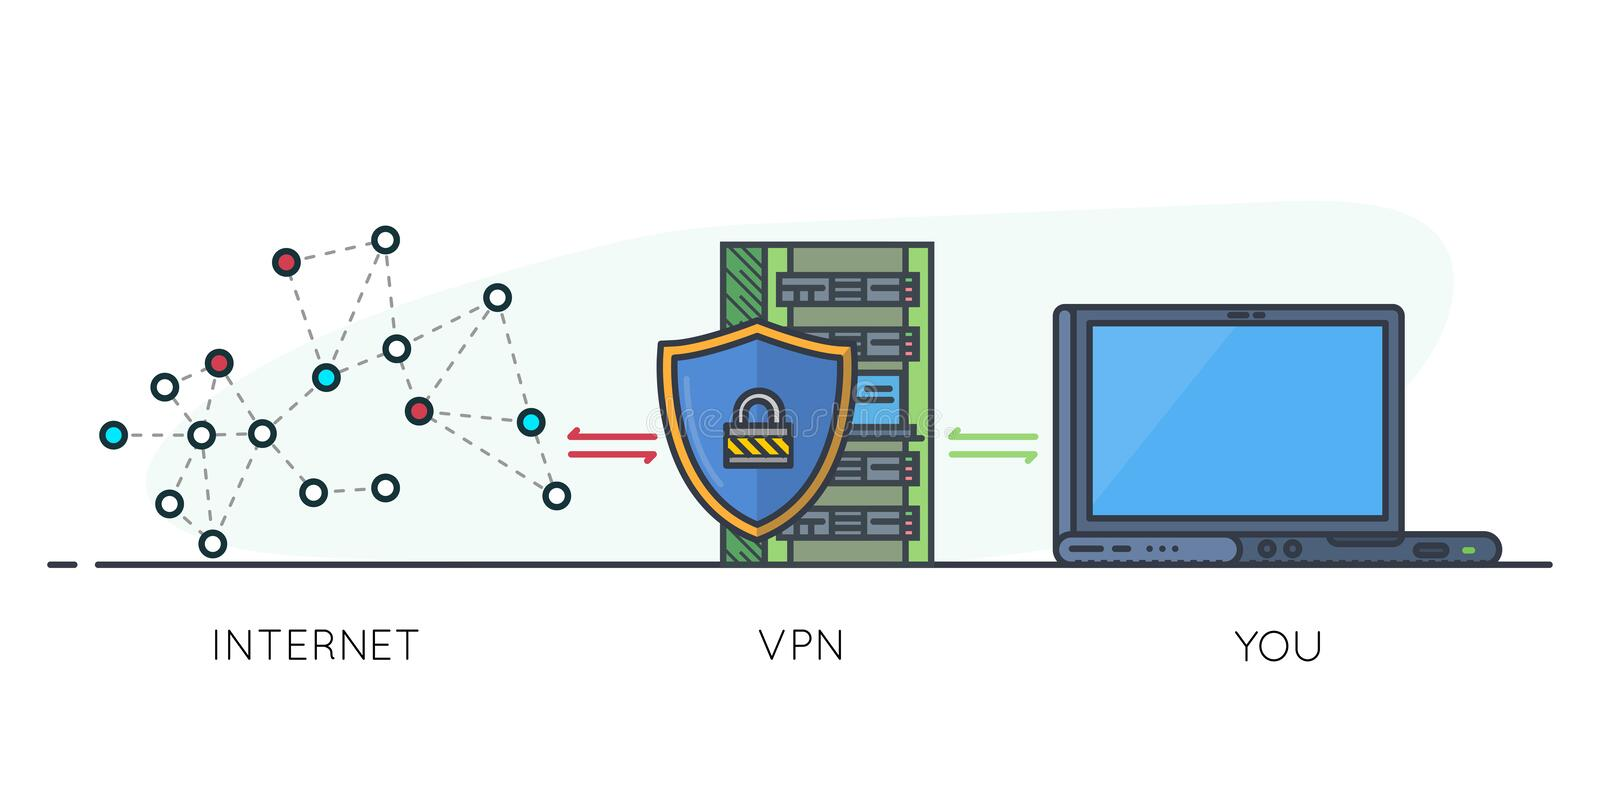 VPN intriglinje baner vektor illustrationer